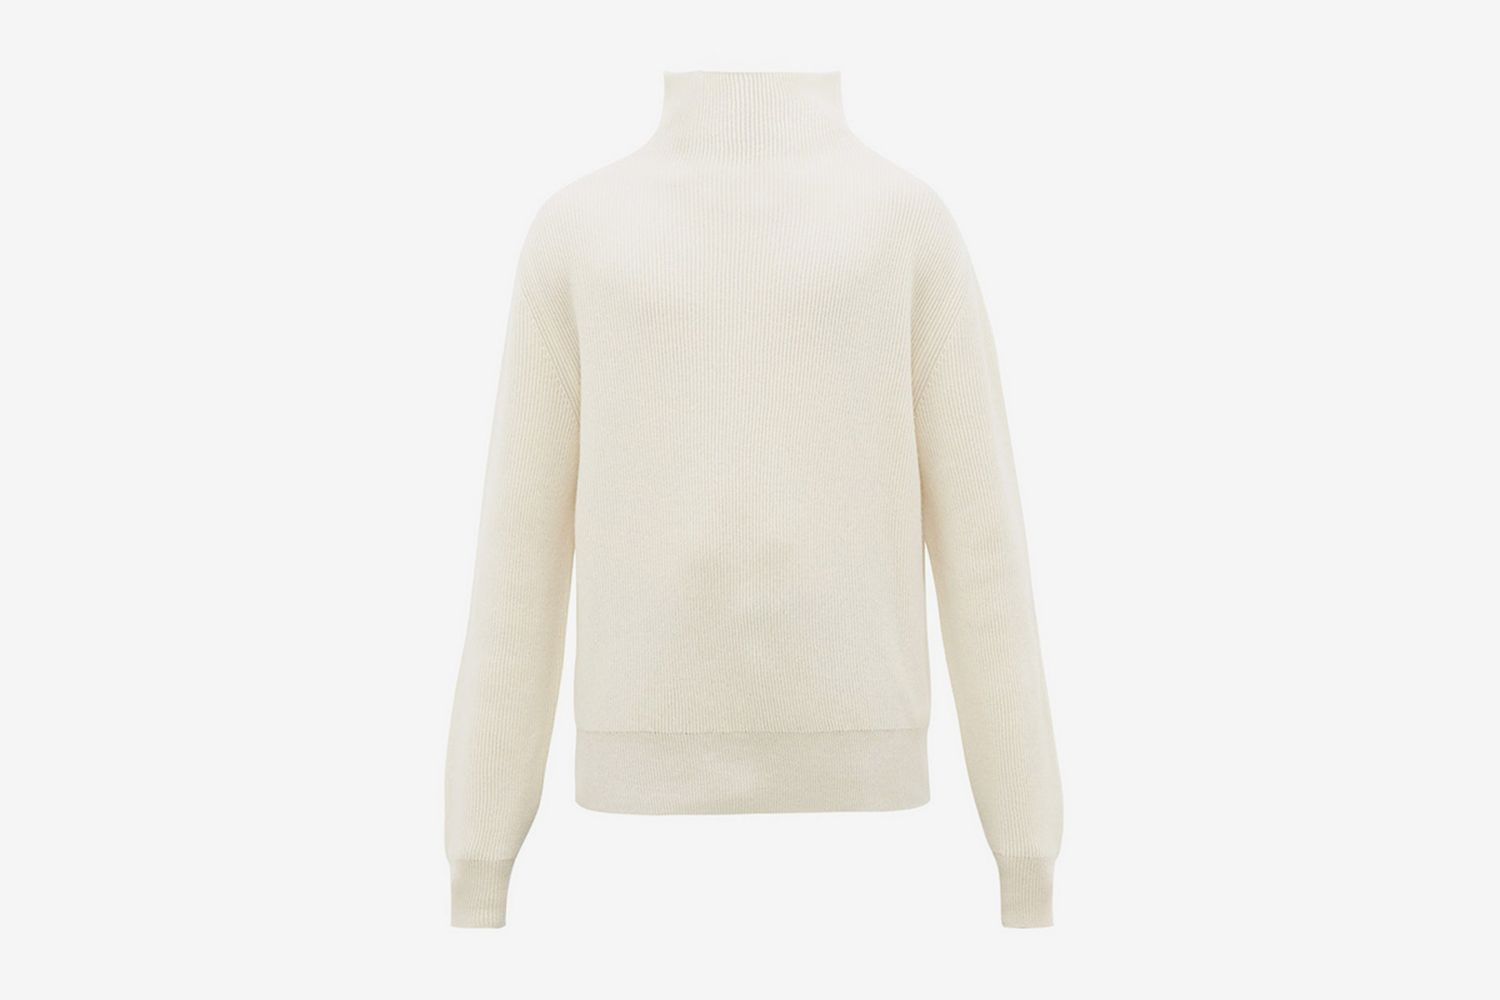 Daniel Roll-Neck Ribbed Cashmere Sweater